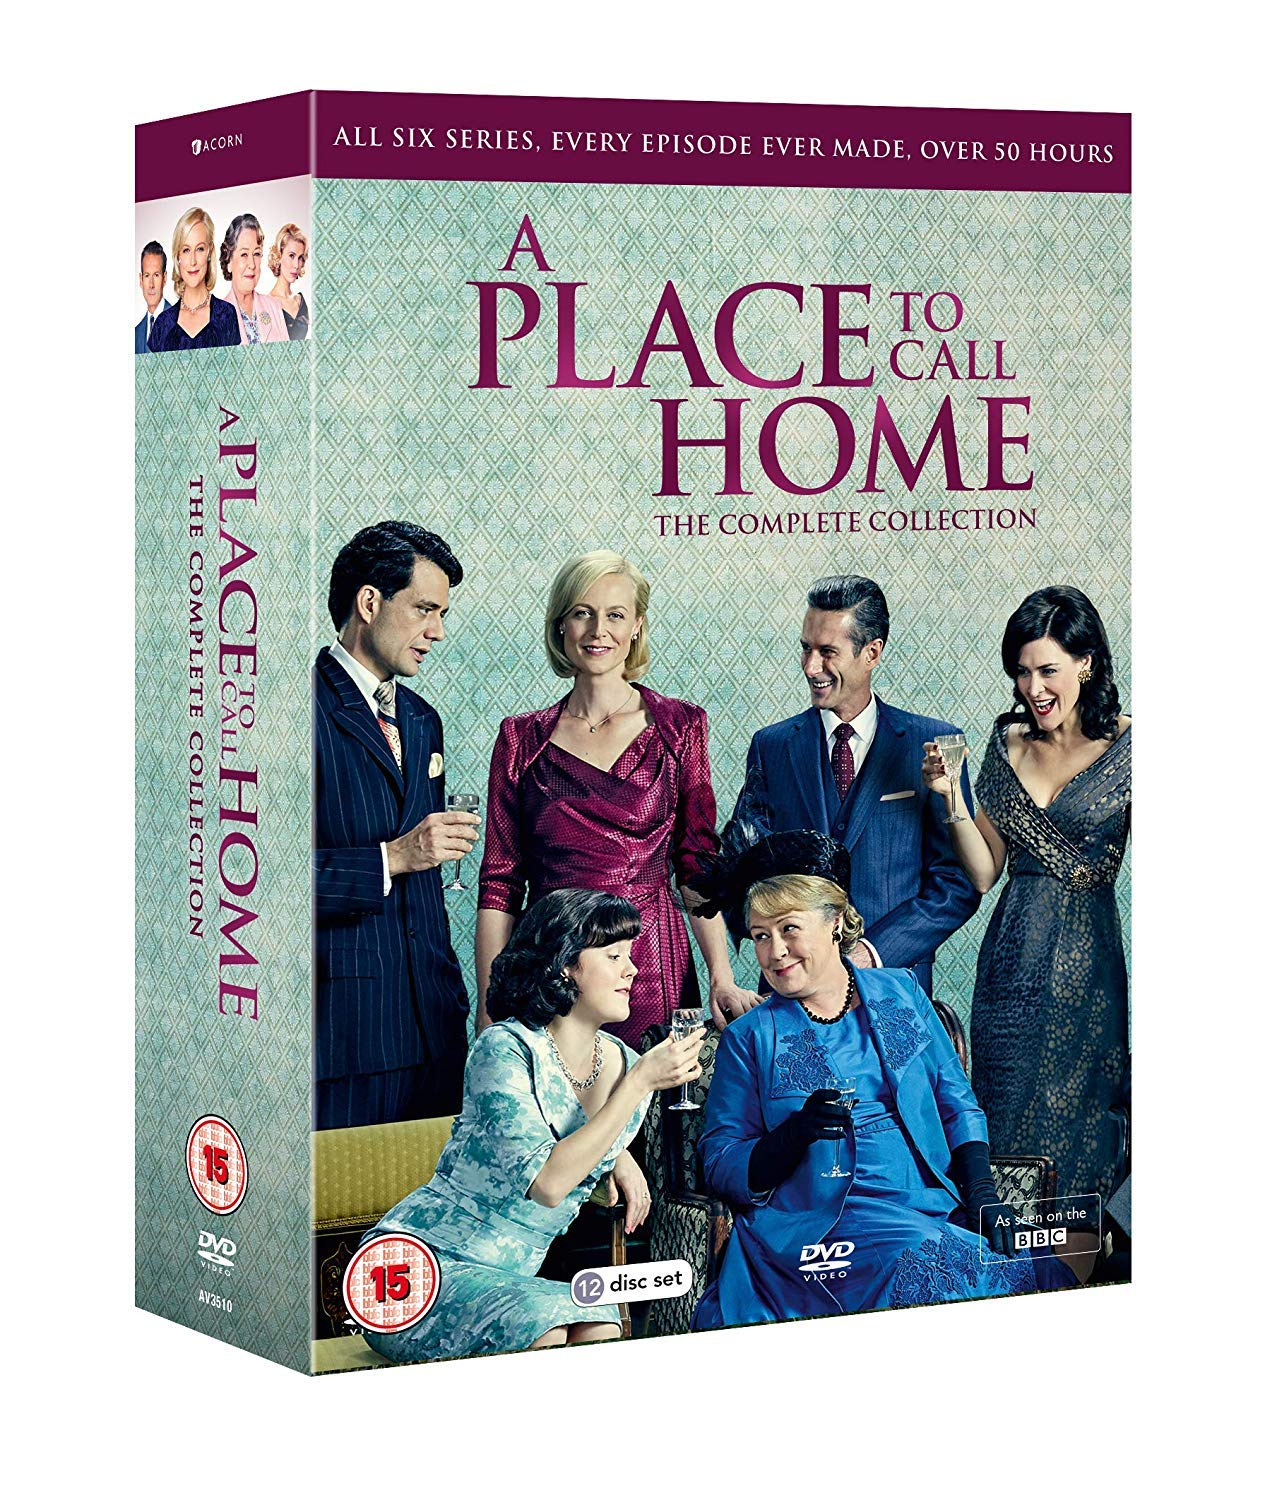 a place to call home by deborah smith reviews a place called home book A Place to Call Home - Series 1 -6 Complete [DVD]: Amazon.co.uk: Marta  Dusseldorp, Noni Hazlehurst, Brett Climo, Craig Hall, David Berry, Abby  Earl: DVD ...